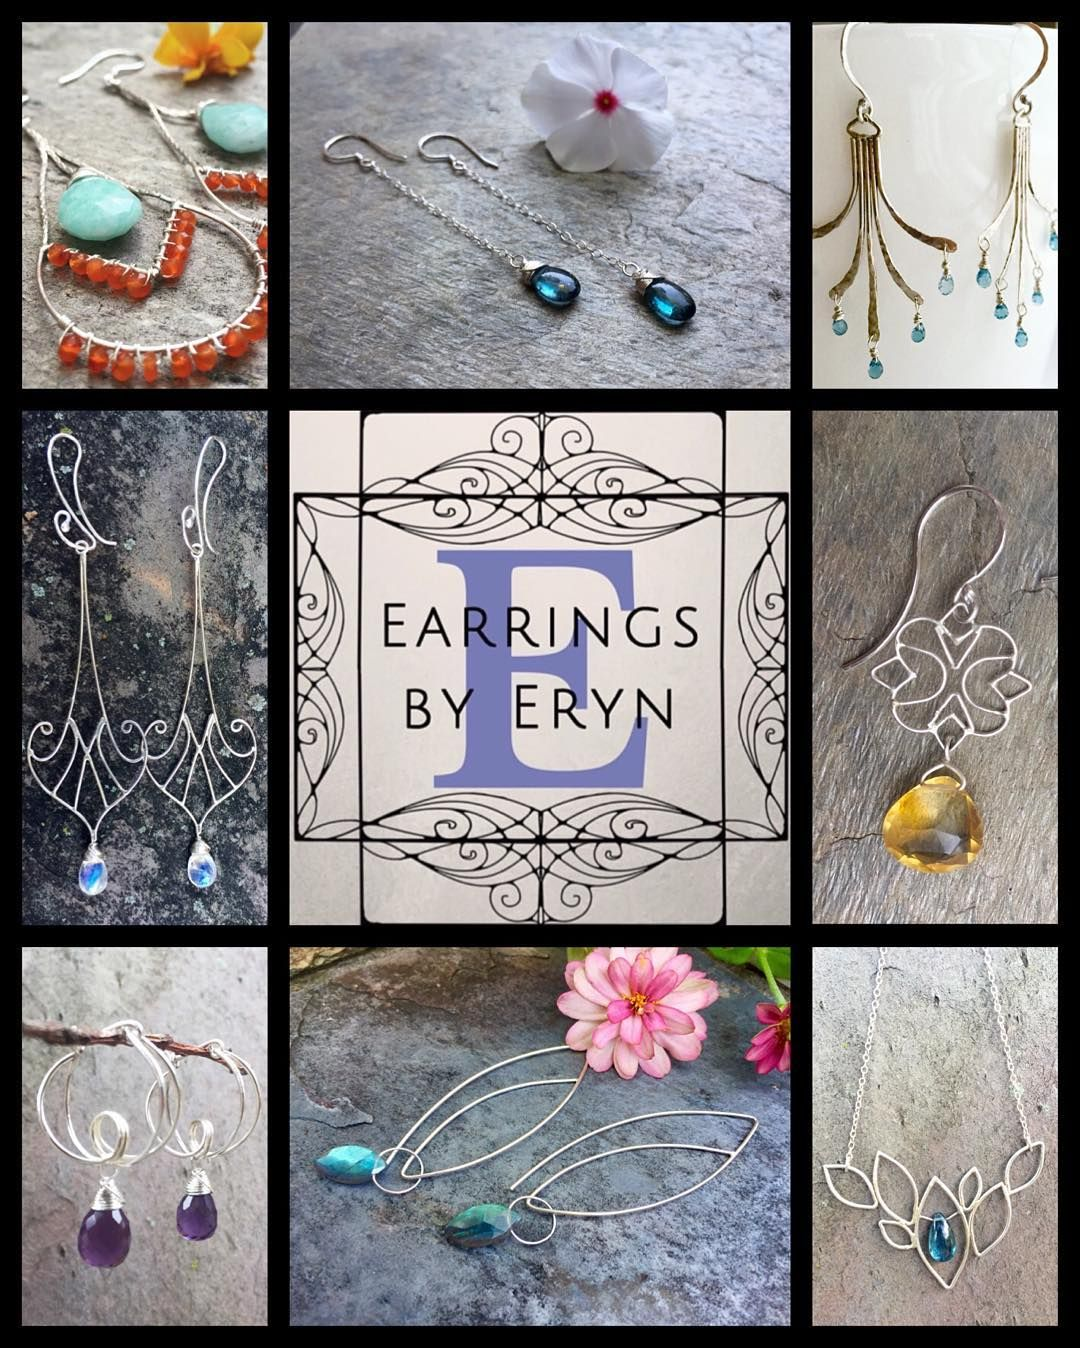 Just booked my first trunk show! Whoo-hoo! It will be held September 3rd at The Blues Jean Bar here in Dallas. 🎉  #earringsbyeryn #earringdesign #handmadeisbetter #dallasartisanjewelry #dallasartisan #trunkshow #comingsoon #dallasfashion #buylocal #buysmall #buyhandmade #supportsmallbusiness #womensupportingwomen #jewelrylogo #businesslogo #selfdesigned #riojeweler